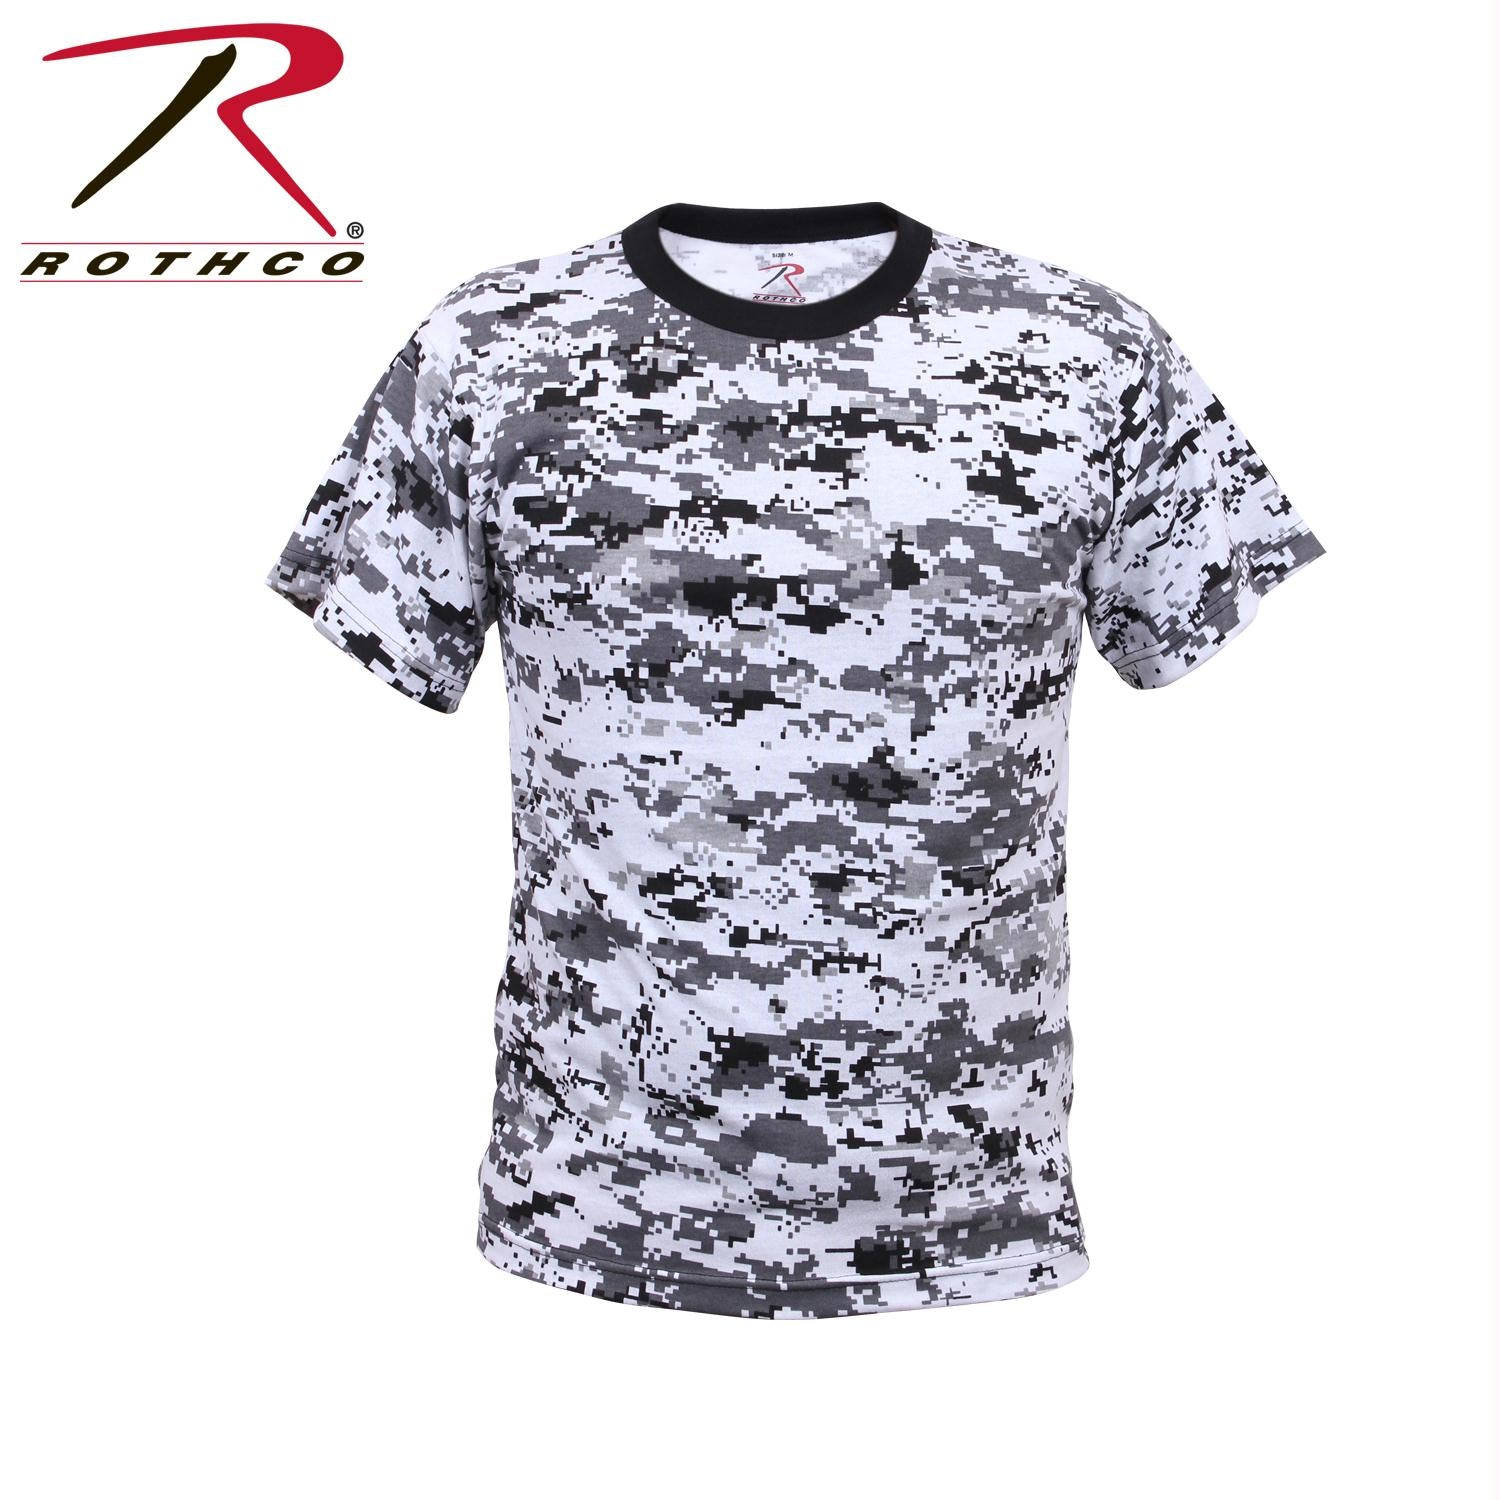 Rothco Kids Digital Camo T-Shirt - City Digital Camo / XL